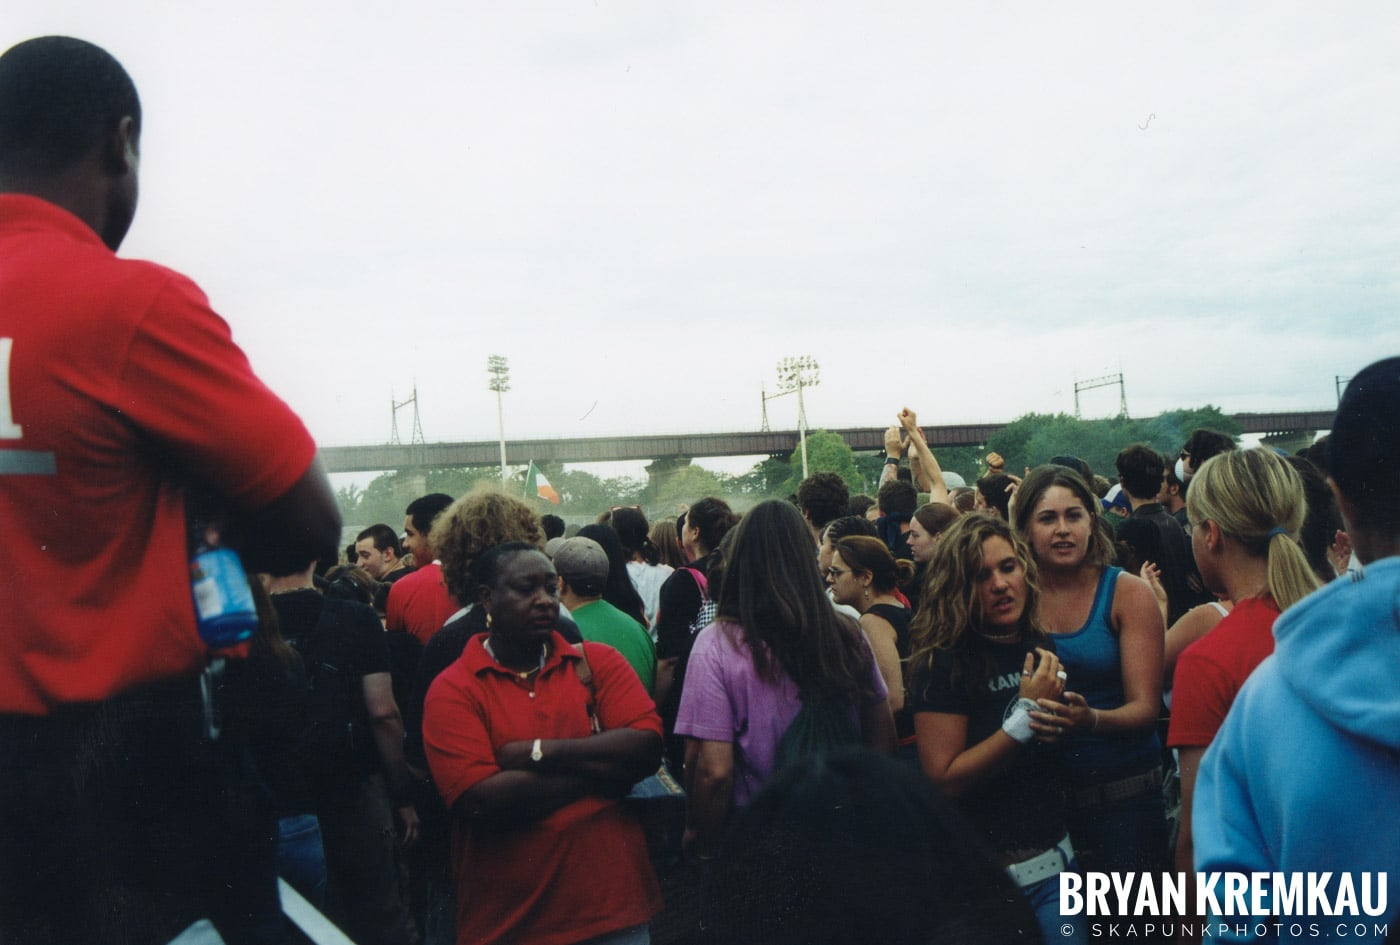 Crowd Shots @ Vans Warped Tour, Randall's Island, NYC - 8.7.04 (16)